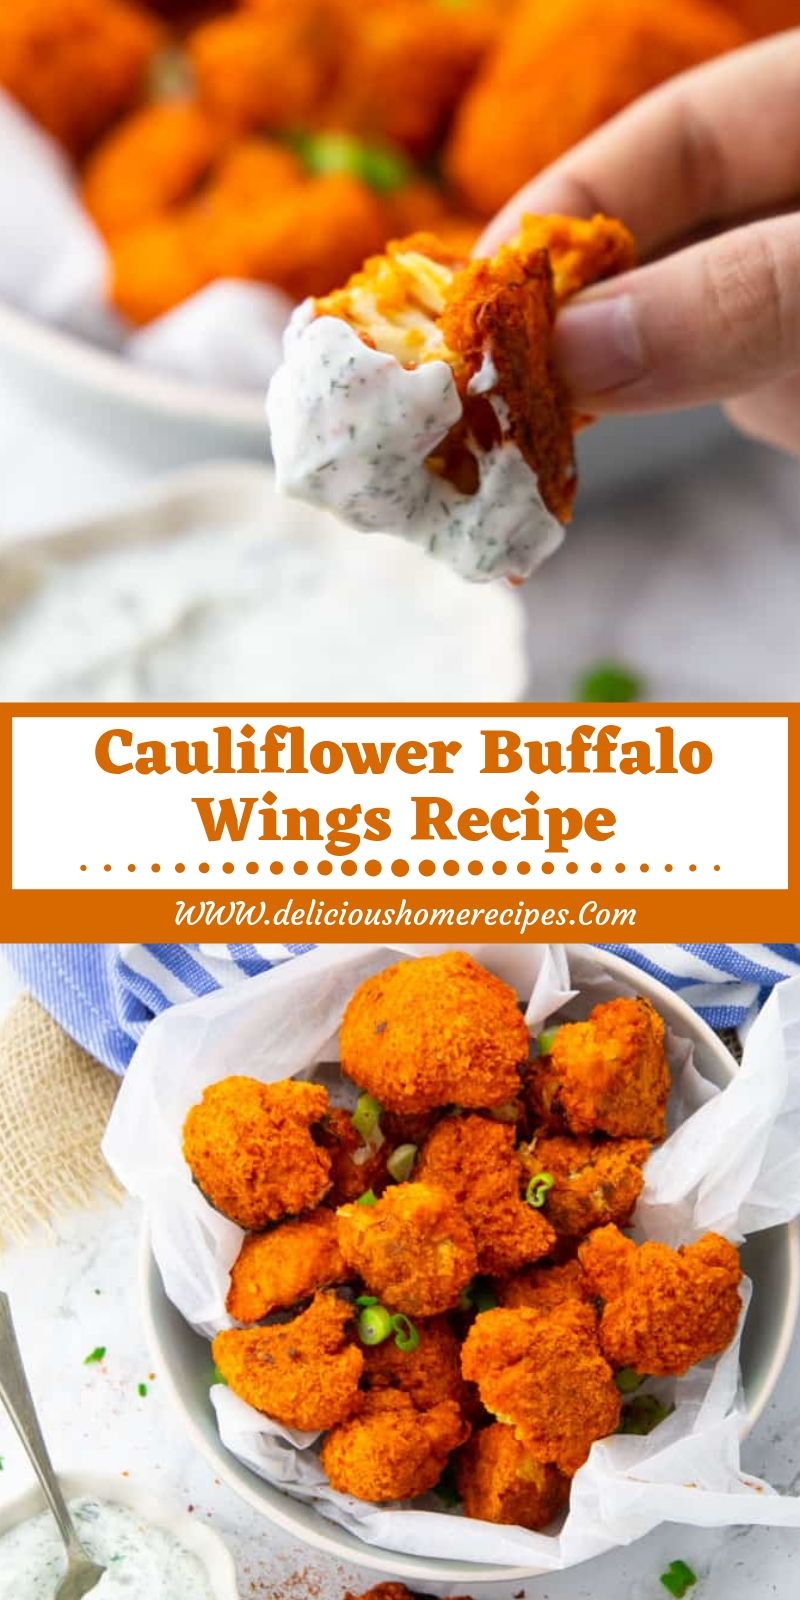 Cauliflower Buffalo Wings Recipe